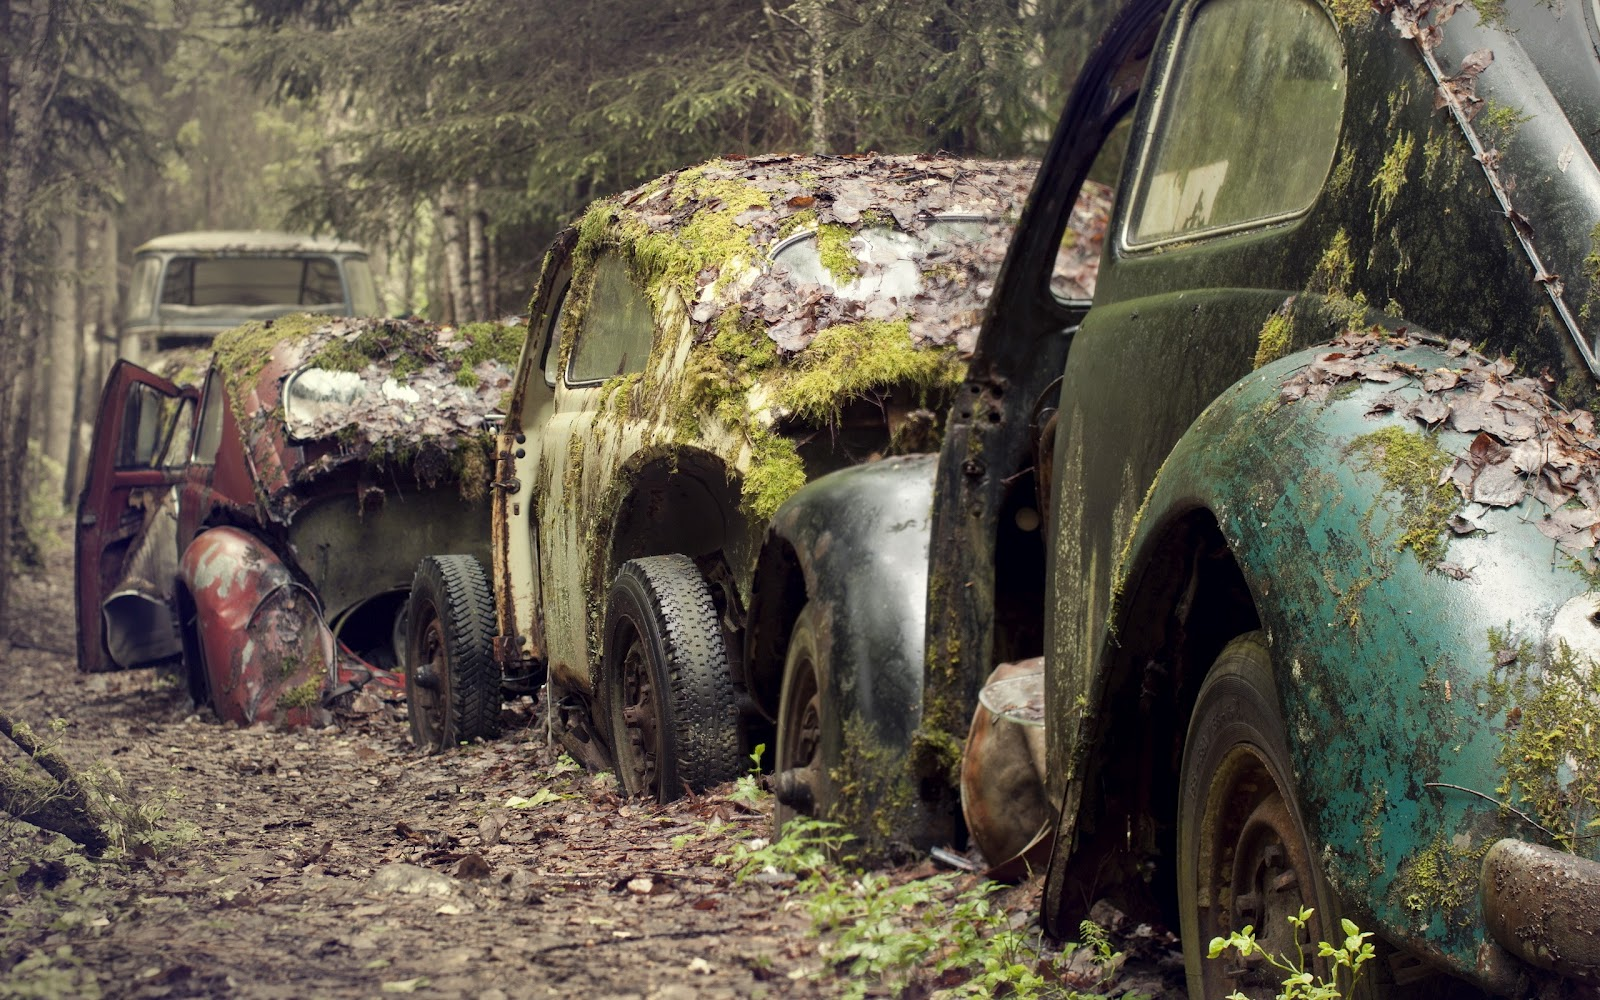 http://1.bp.blogspot.com/-j7yi-MaCnjw/T4gnDbqZKqI/AAAAAAAABTo/jCDM4X4rxLE/s1600/Volkswagen_Beetle_Vintage_Cars_Covered_with_Moss_Awesome_Photography_HD_Wallpaper.jpg